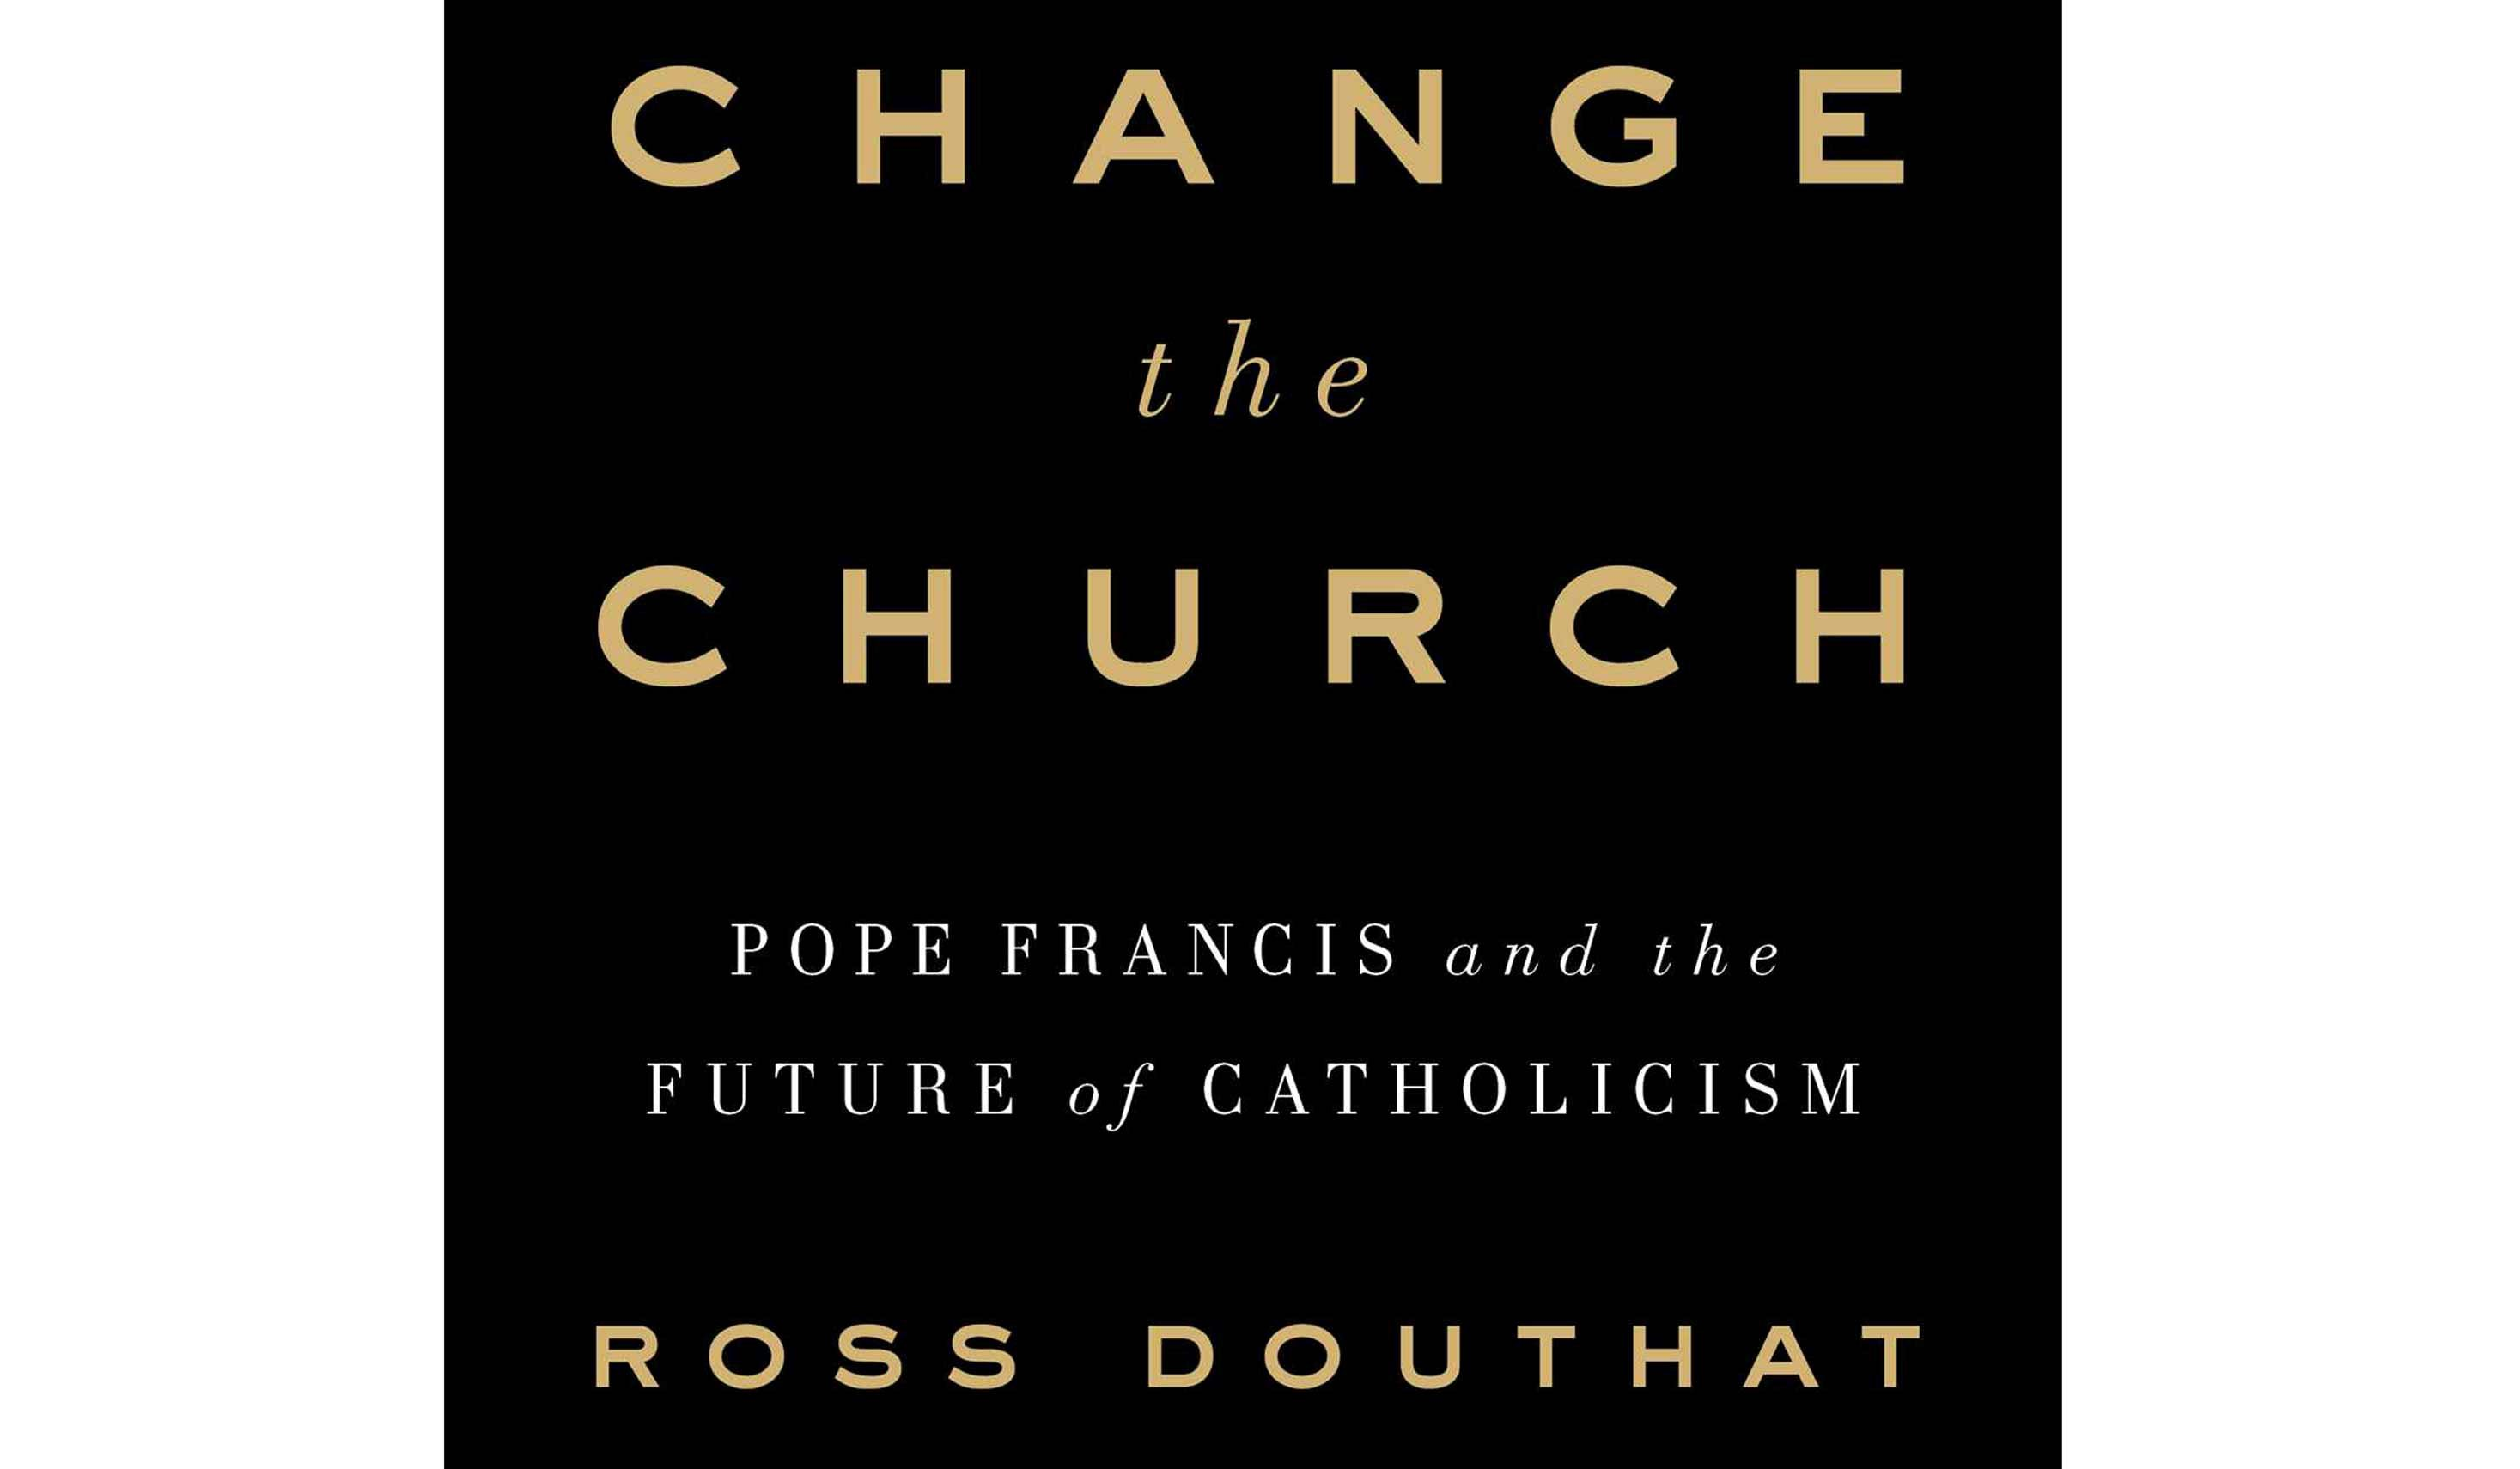 BOOK REVIEW: 'To Change the Church' by Ross Douthat